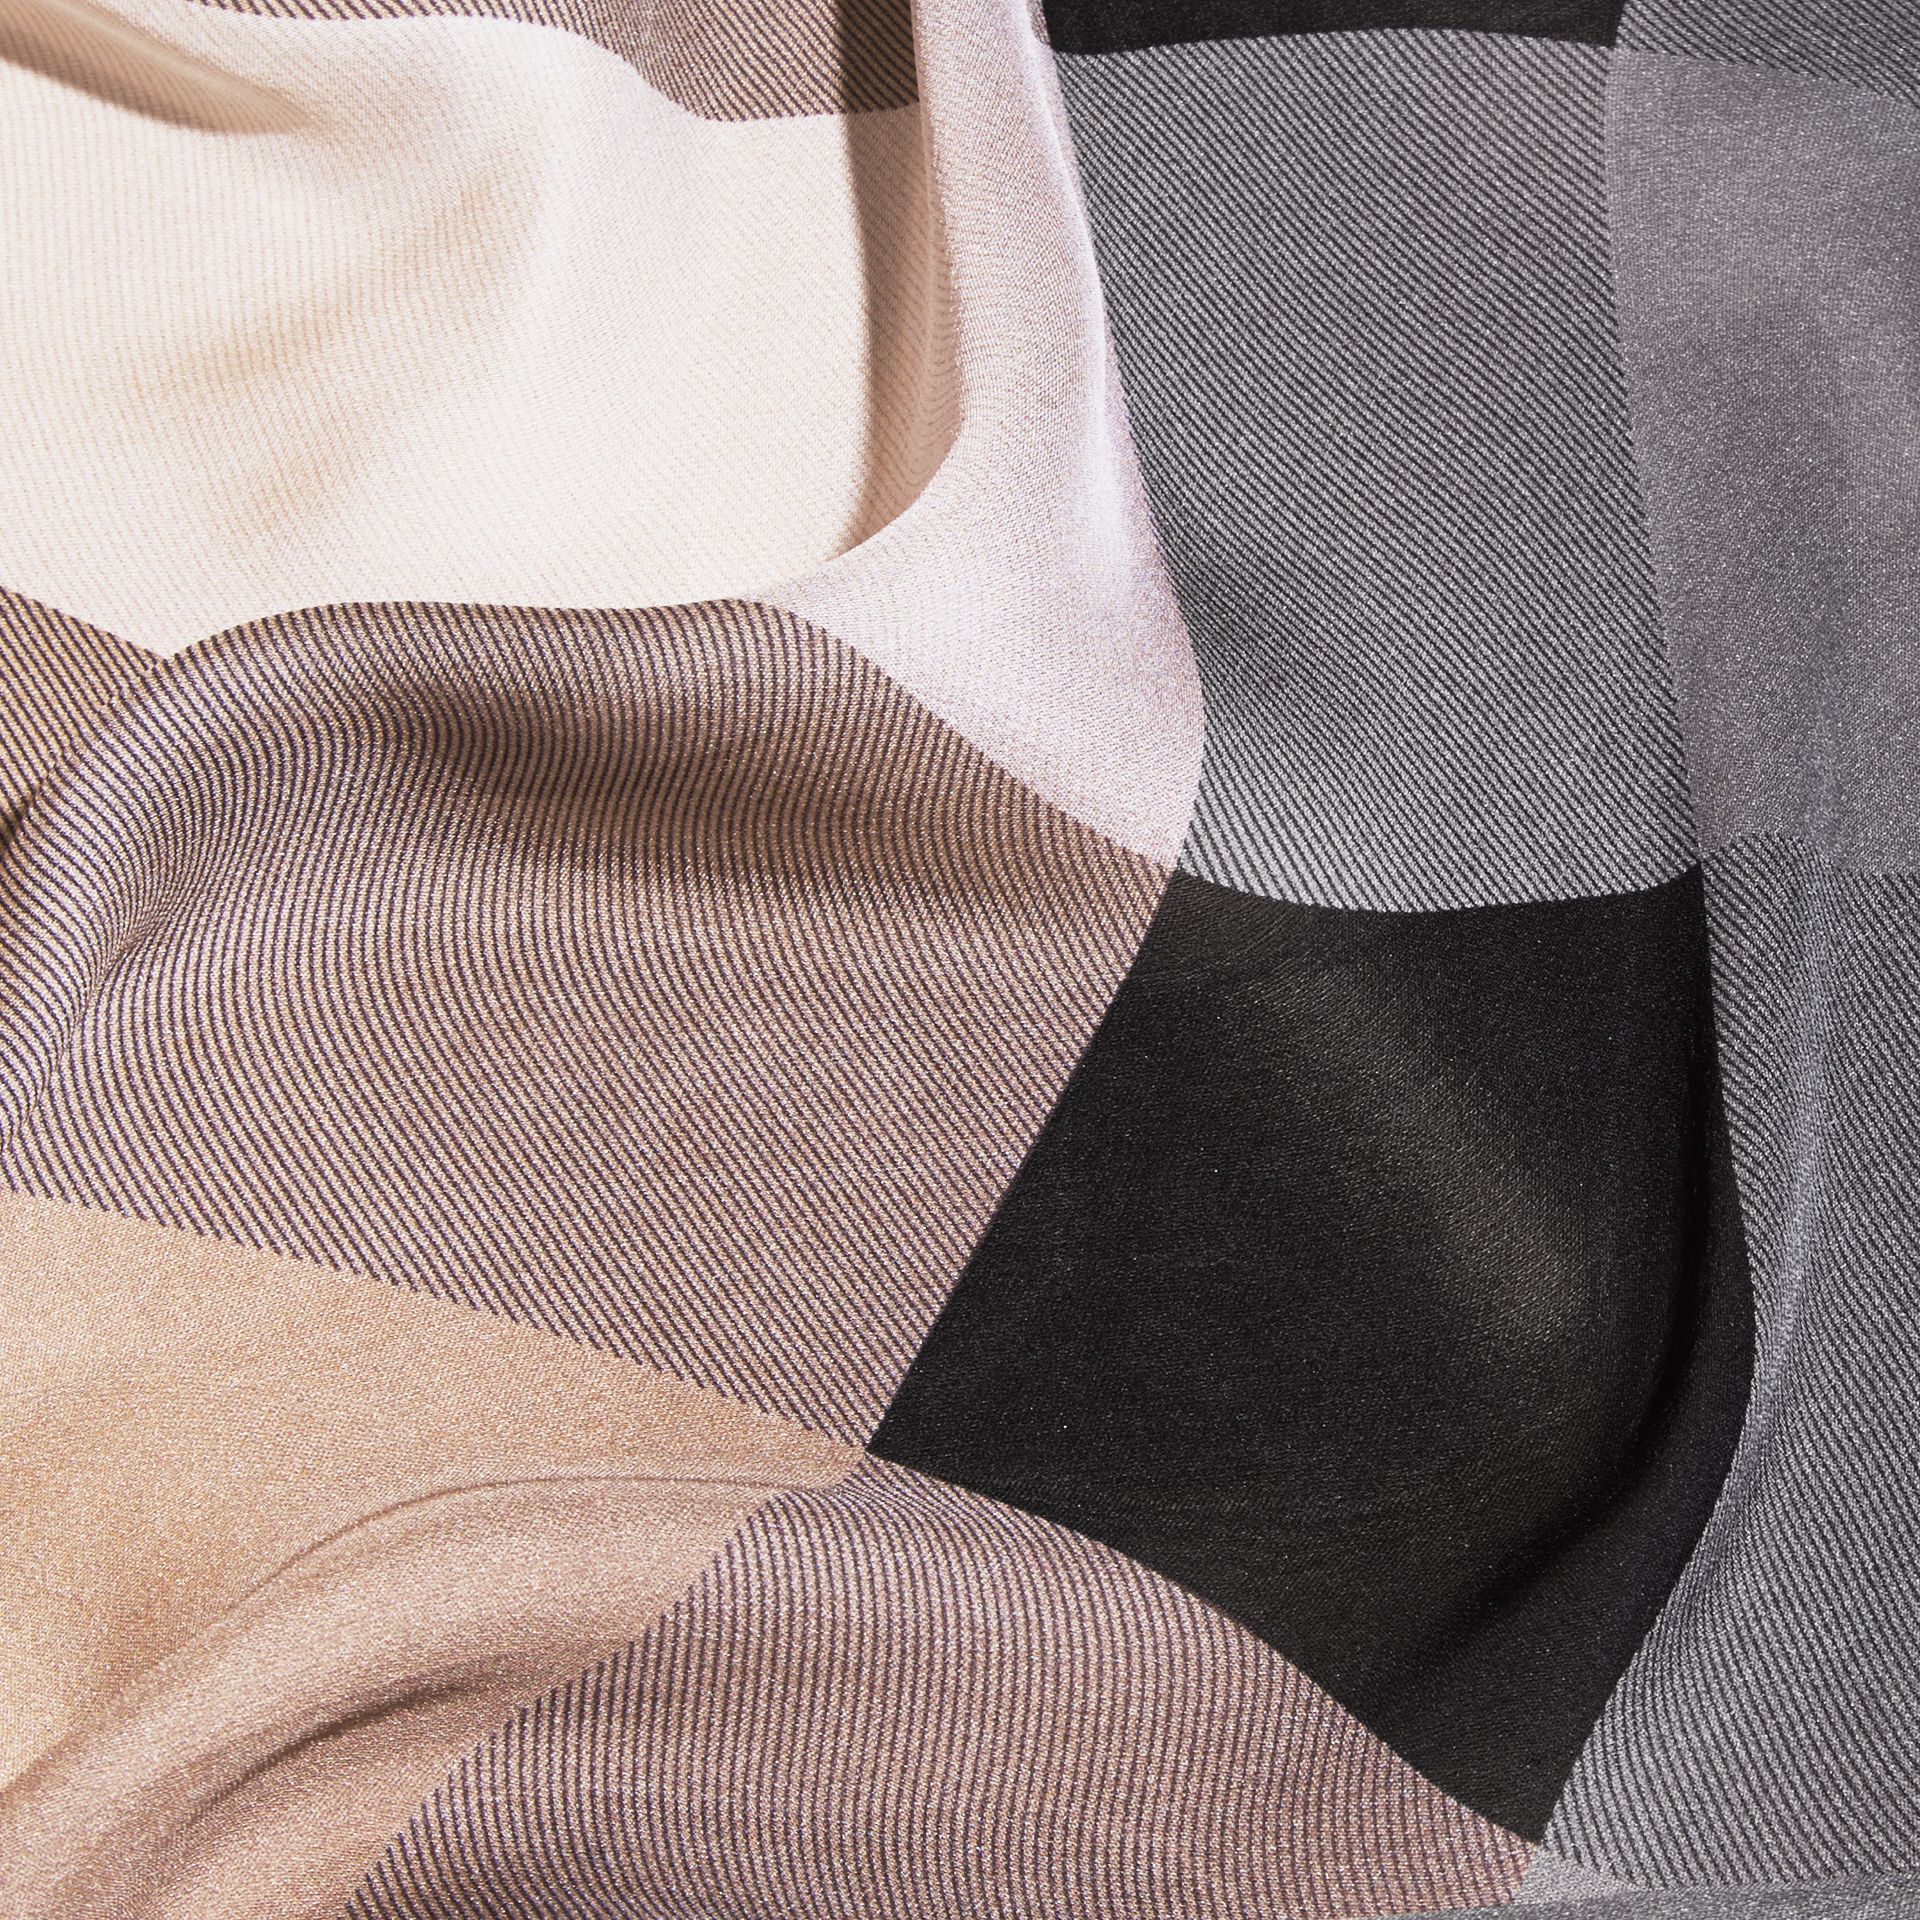 Ombré Washed Check Silk Scarf in Camel/black - Women | Burberry - gallery image 2